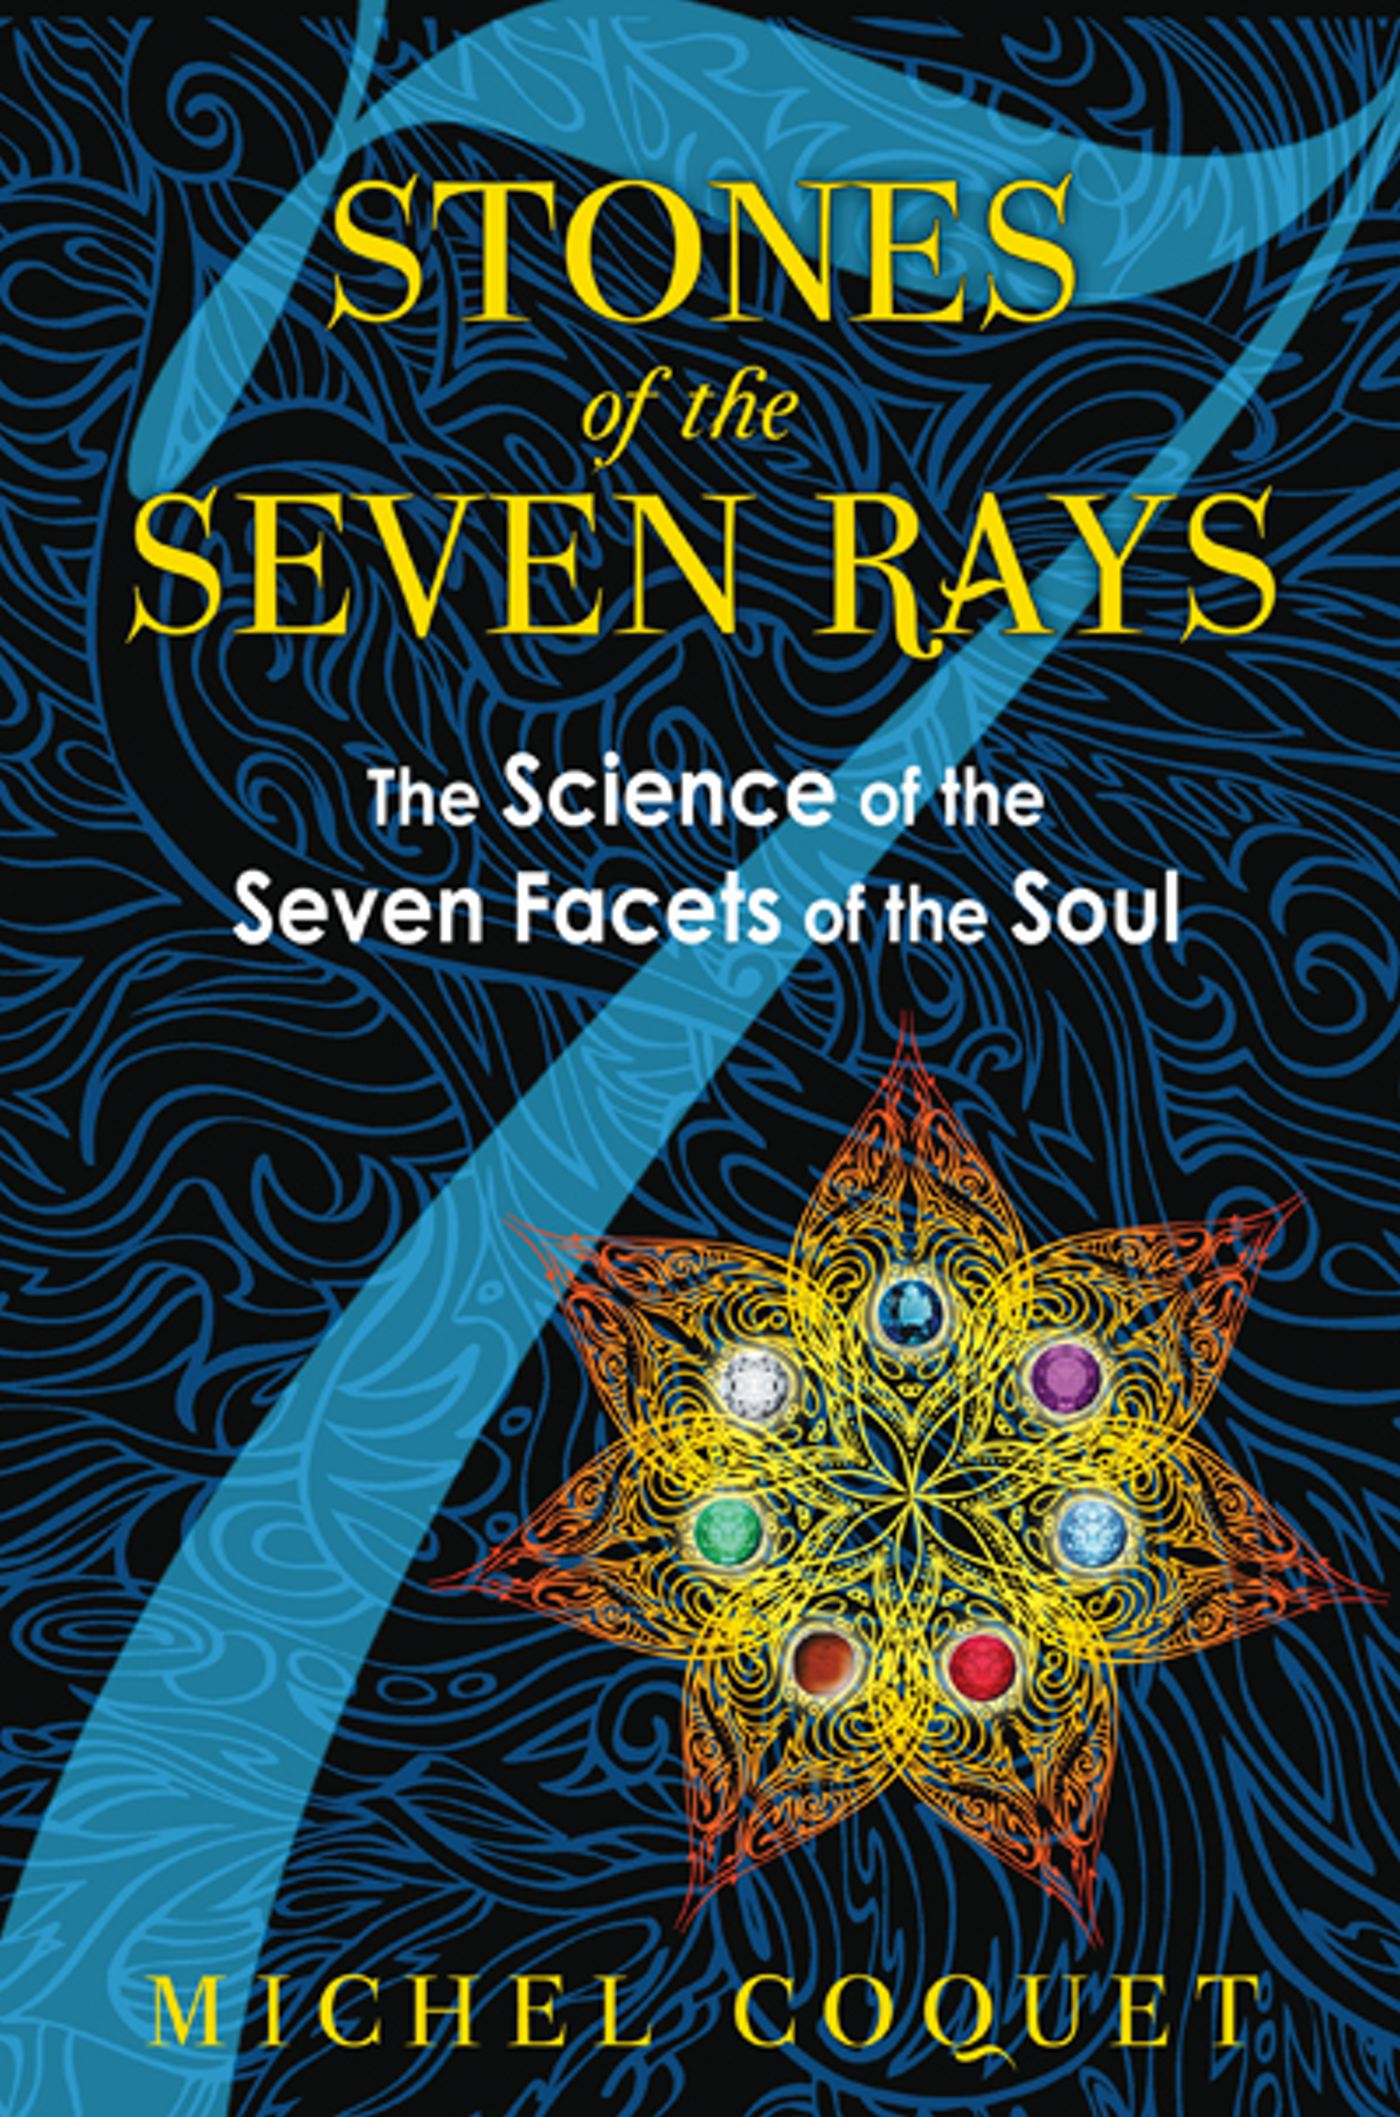 Stones-of-the-seven-rays-9781594774331_hr